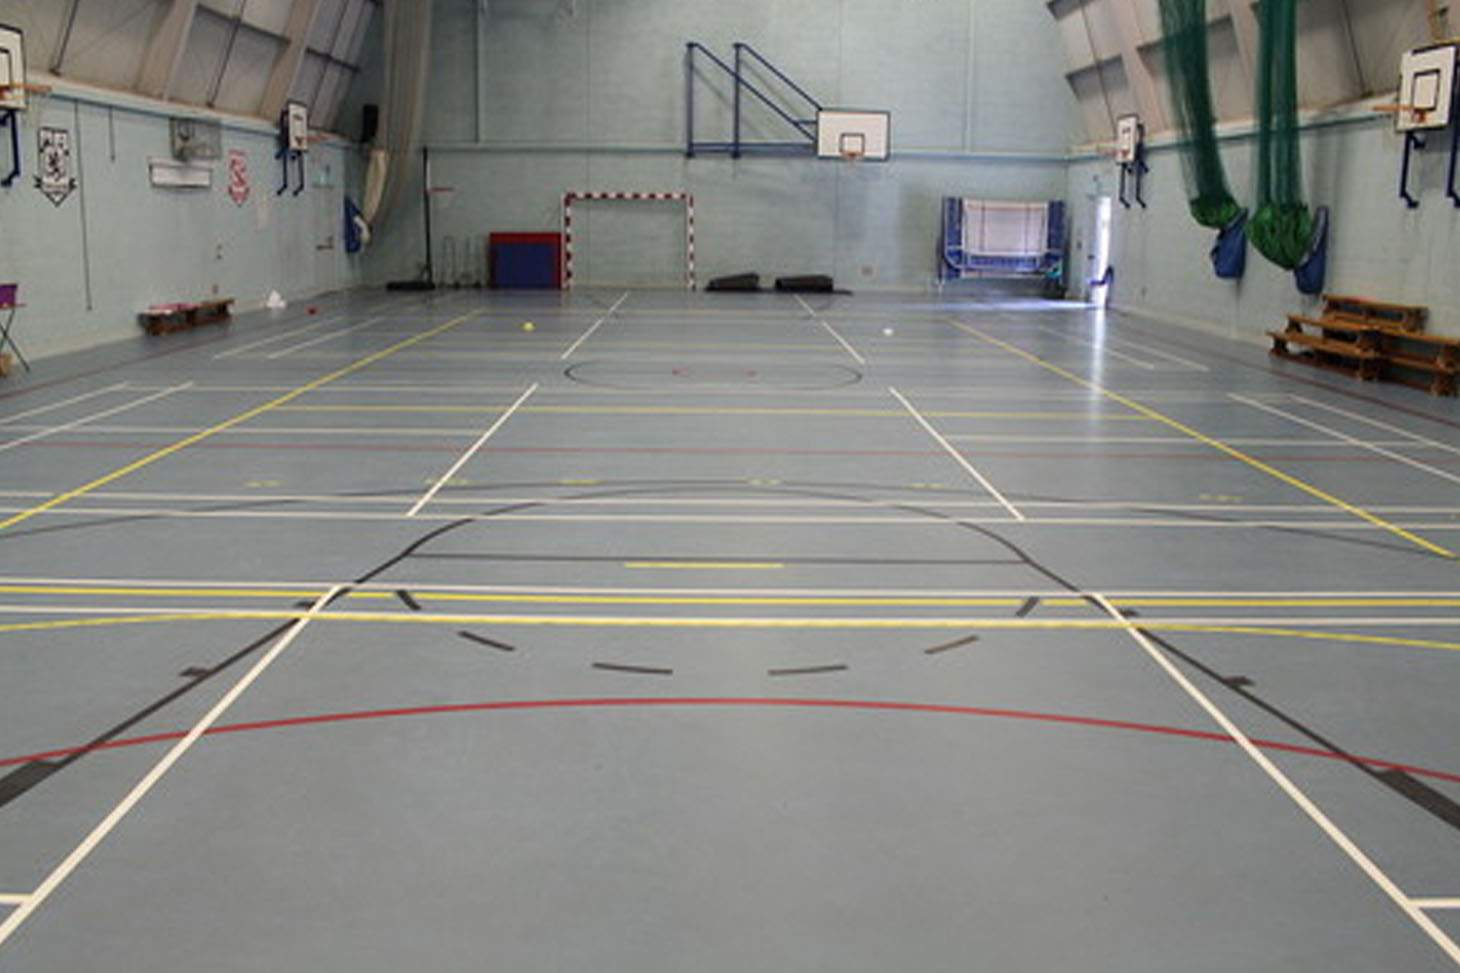 St Edmund Campion Catholic School & Sixth Form Centre Indoor basketball court